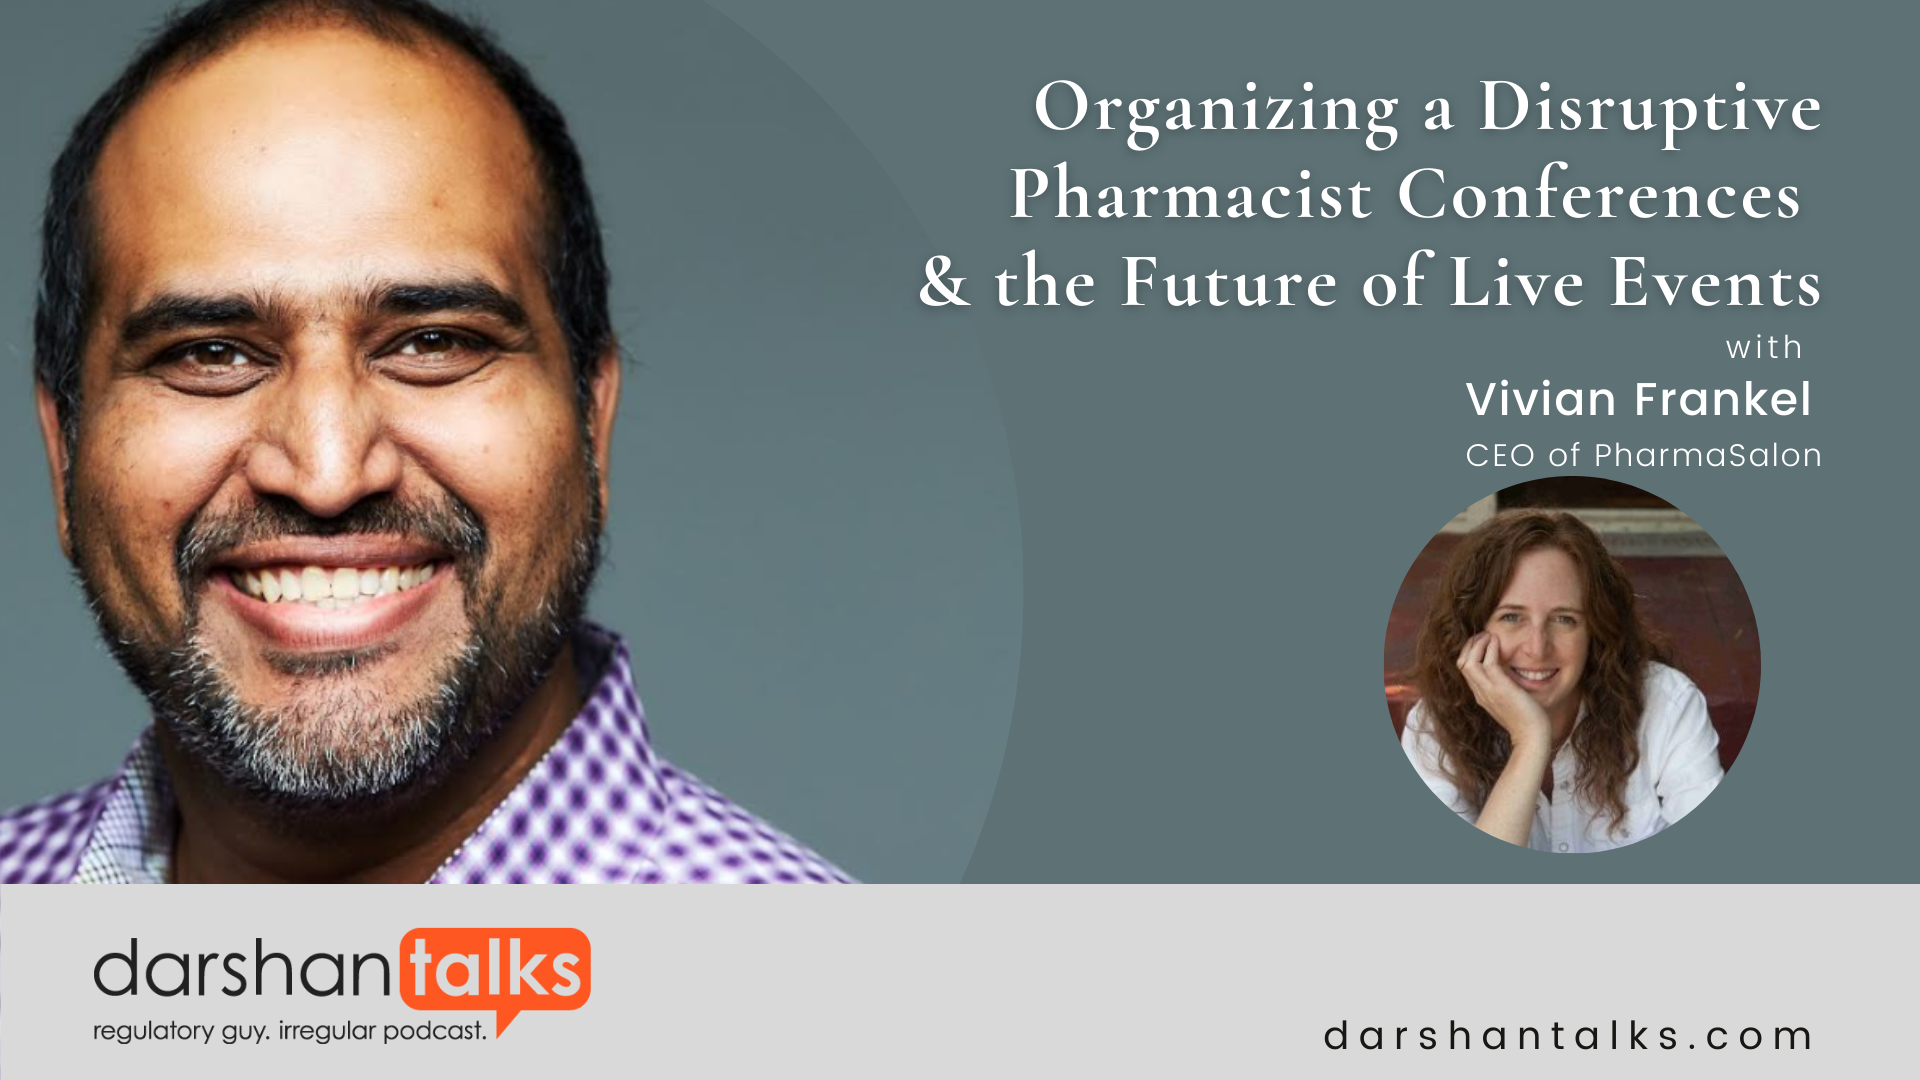 Organizing a Disruptive Pharmacist Conferences and the Future of Live Events